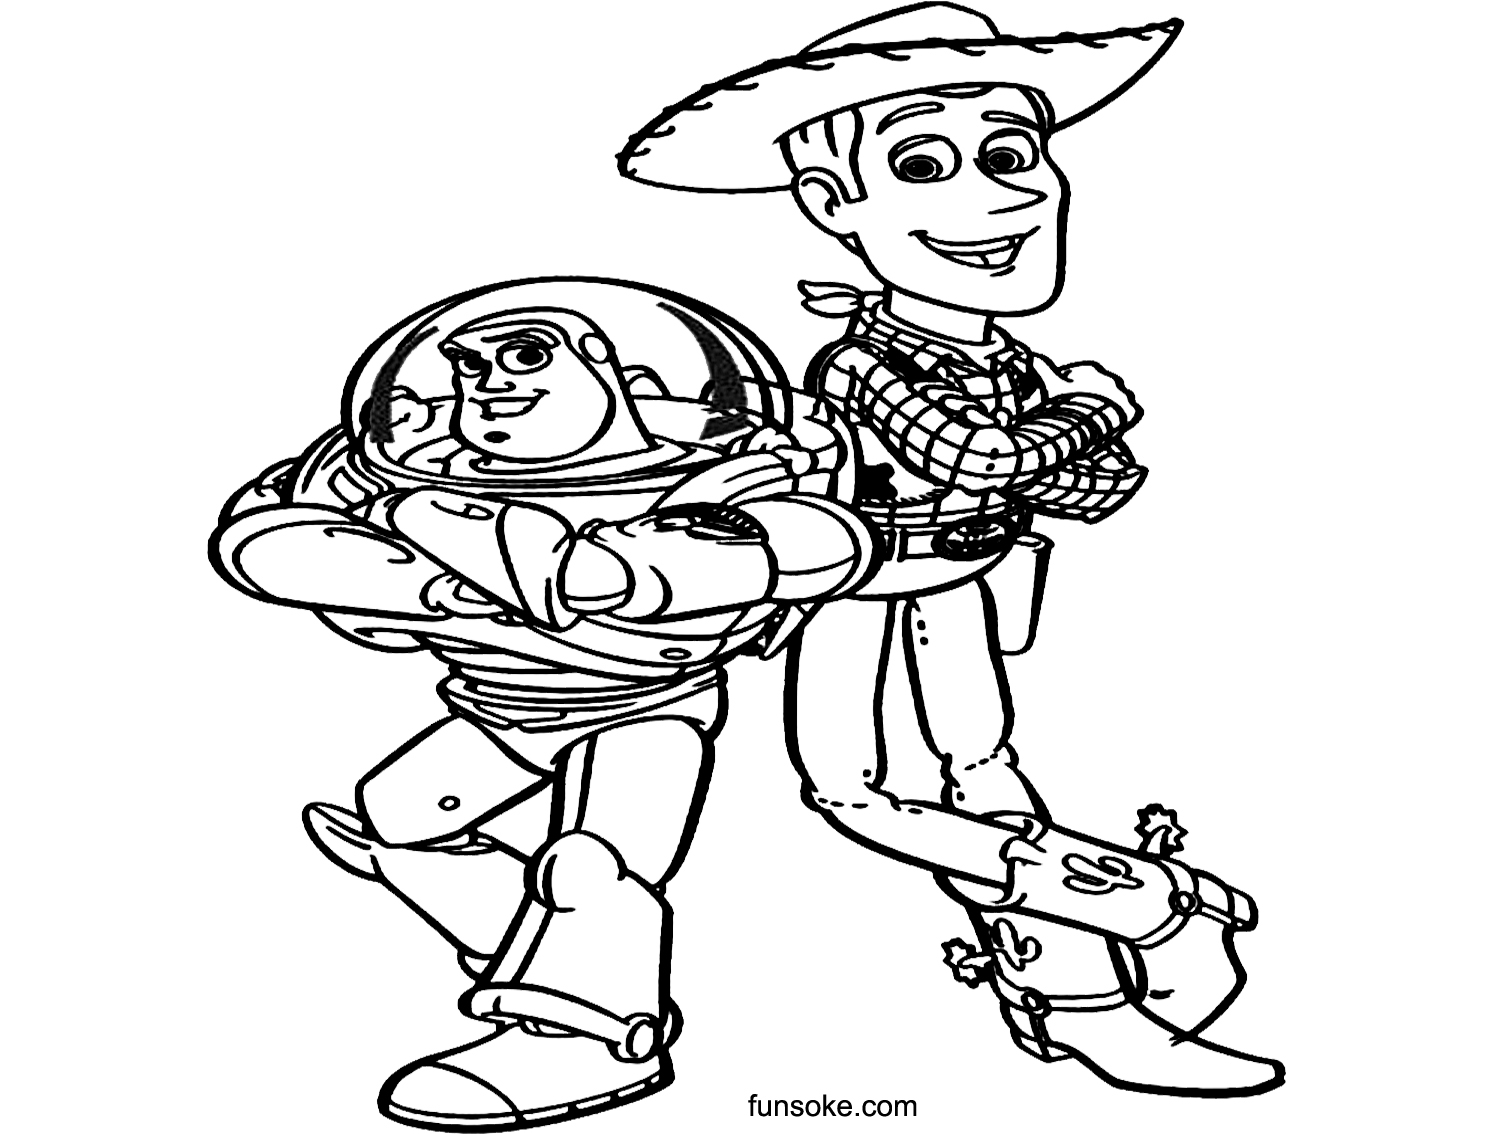 coloring page toy story colouring pages woody toy story funsoke coloring page story toy